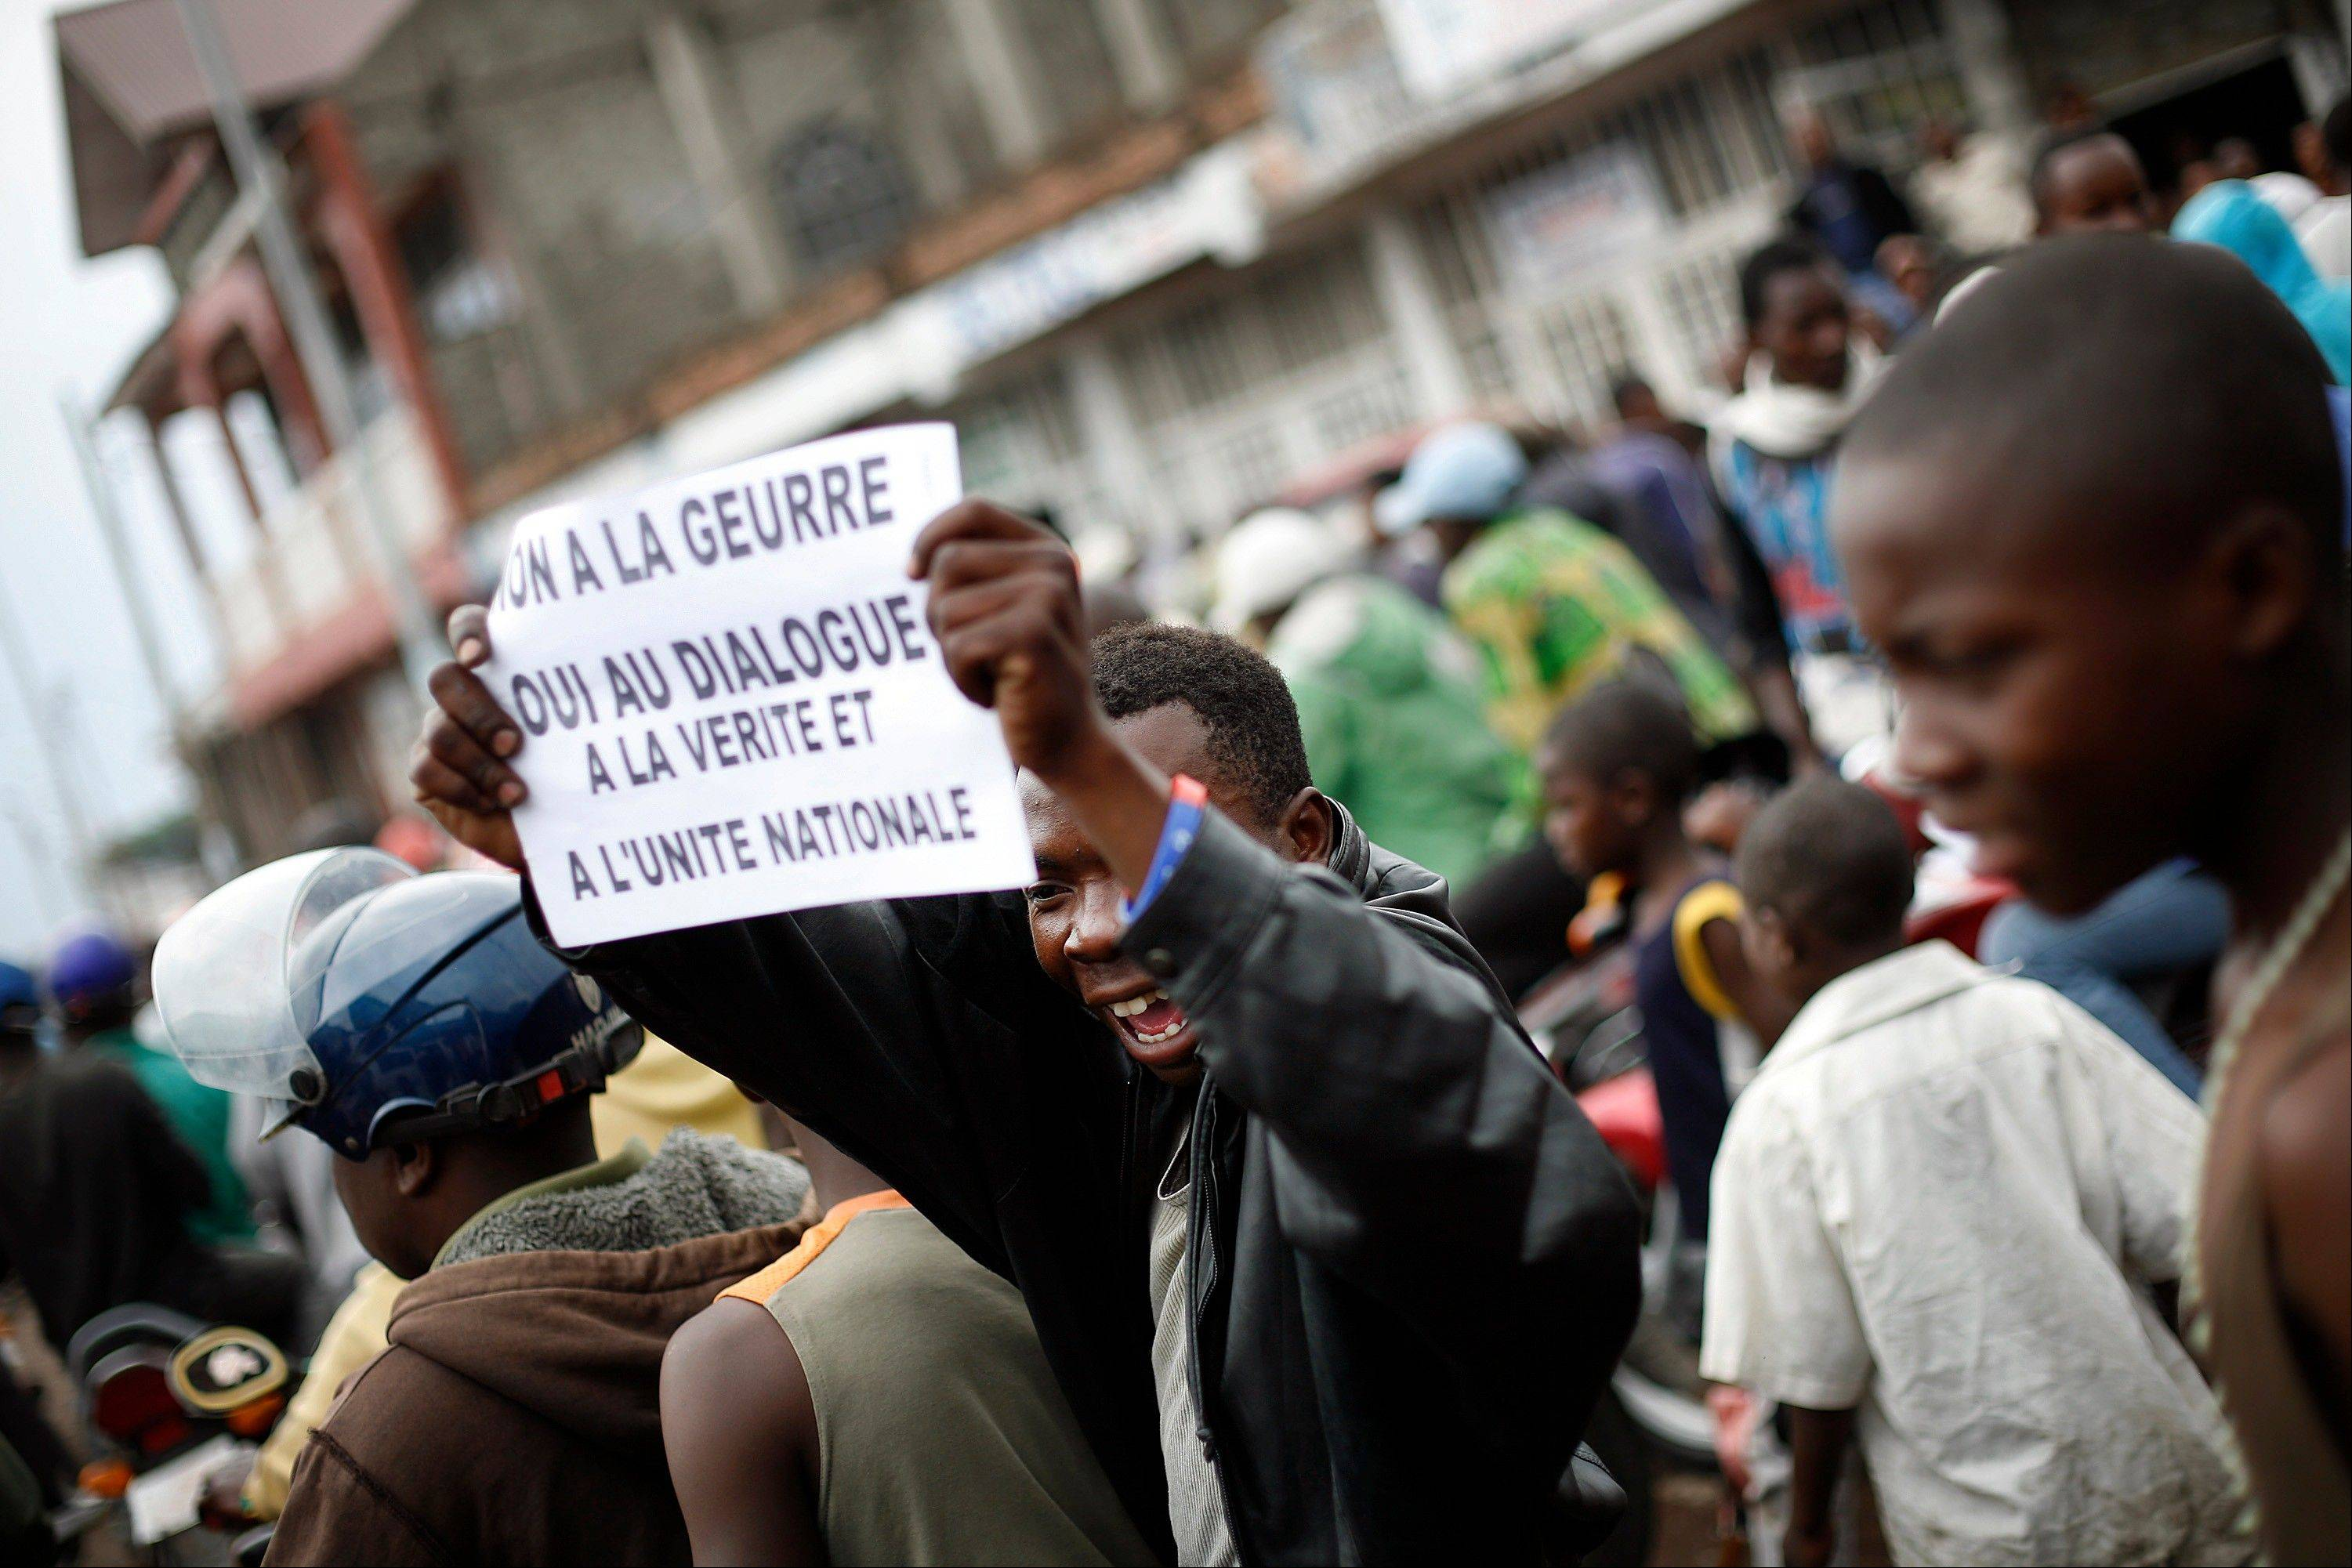 A Goma resident holds up a banner in French reading, �No to war, yes to dialogue, the truth and national unity� as he gathers with others for an anti President Joseph Kabila demonstration supported by the M23 rebel movement in Goma, eastern Congo, Wednesday Nov. 28, 2012.